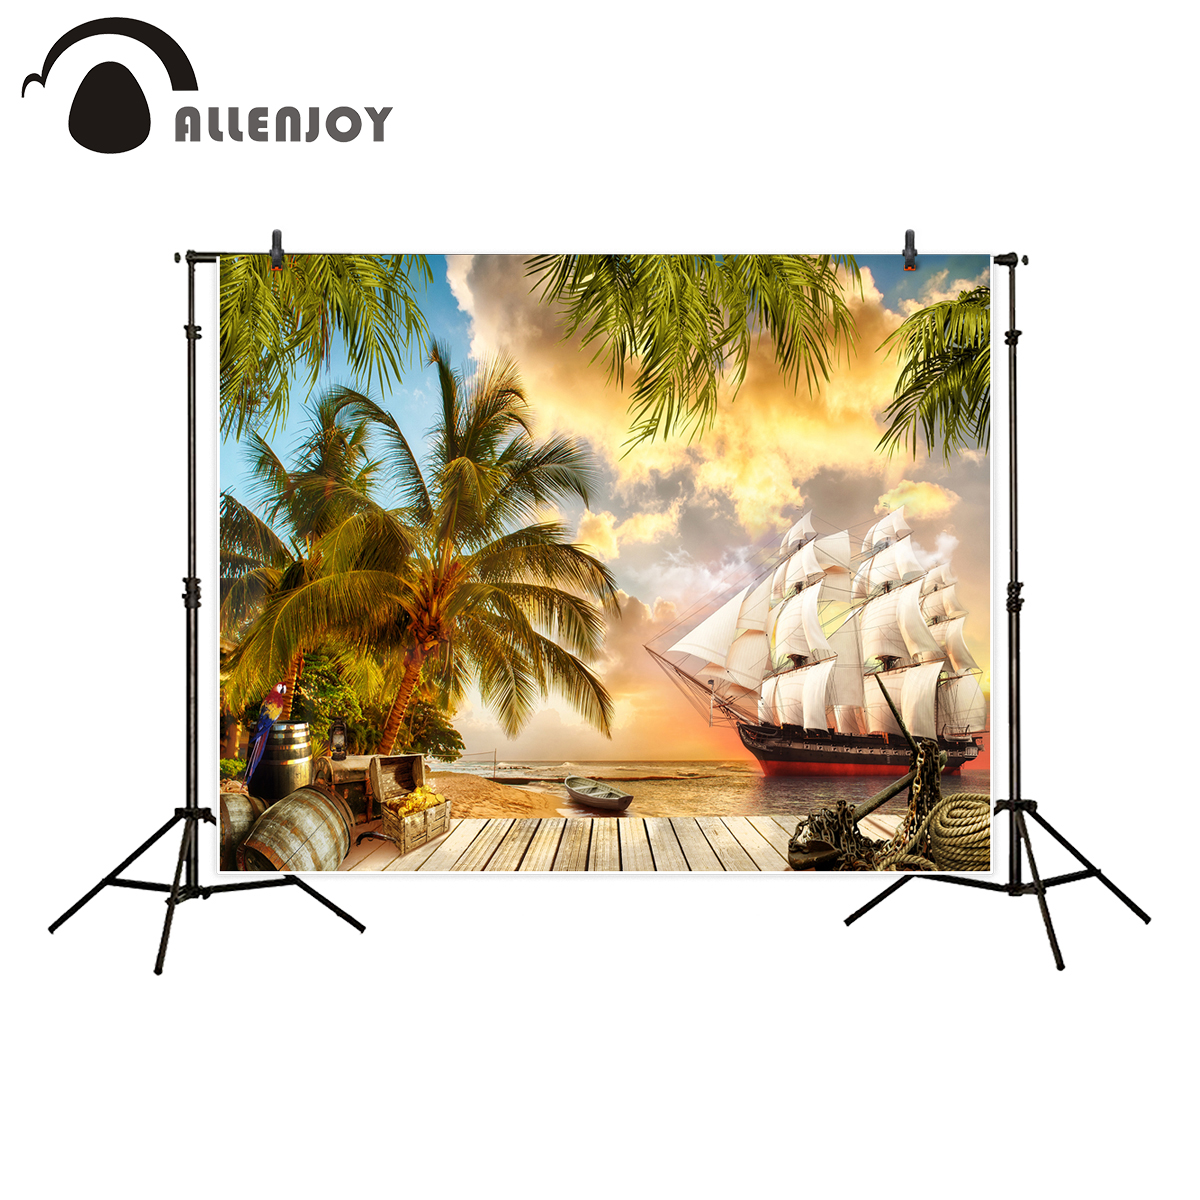 Allenjoy photography backdrop pirate ship Treasure chest coconut tree bucket parrot background photo studio camera fotografica kate natural scenery photography backdrop autumn defoliation for outdoor wedding photography background camera fotografica